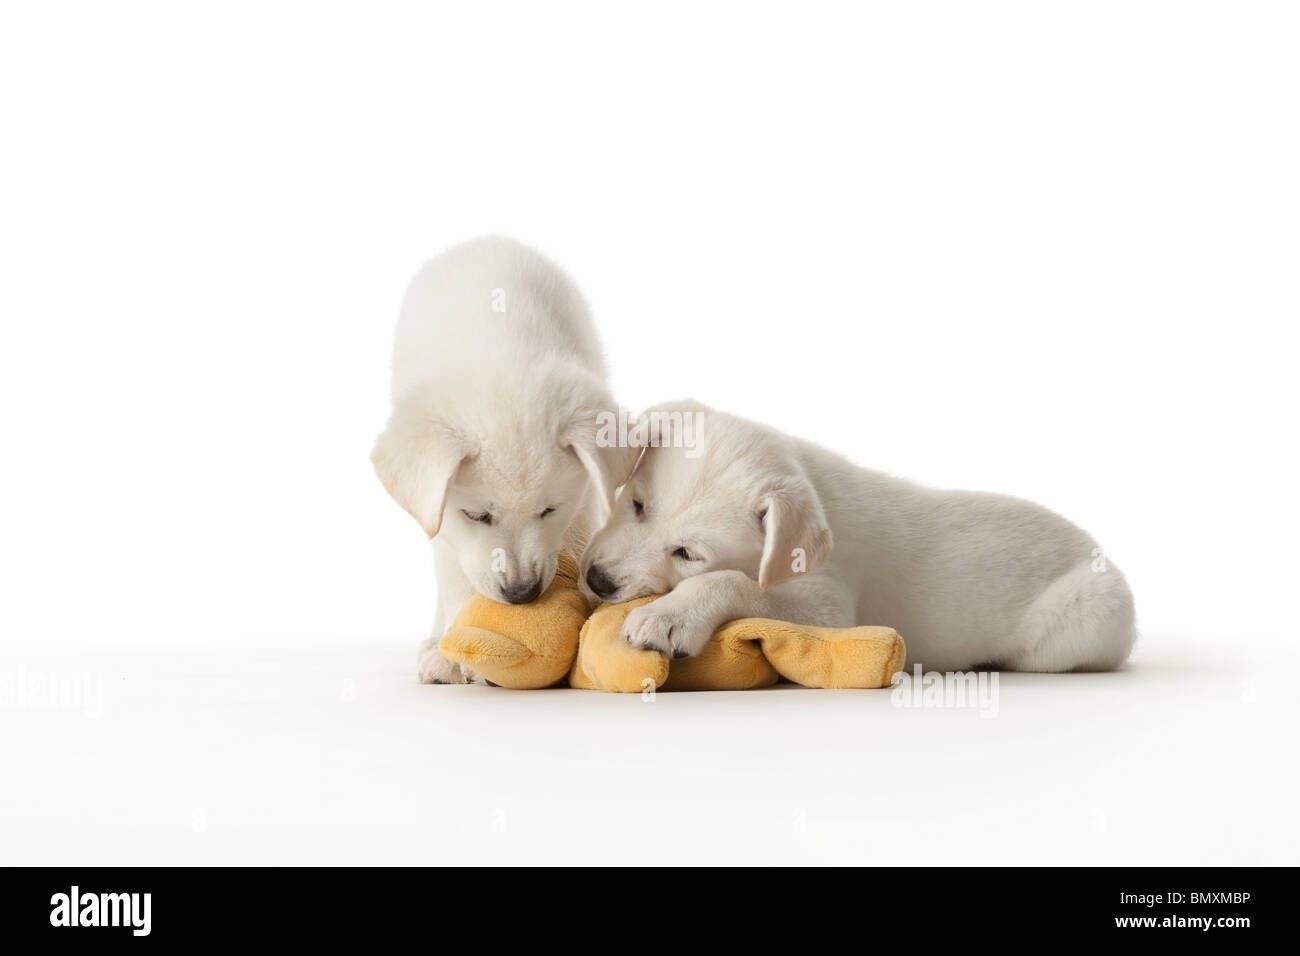 Two cute white puppies playing with a toy on white background - Stock Image